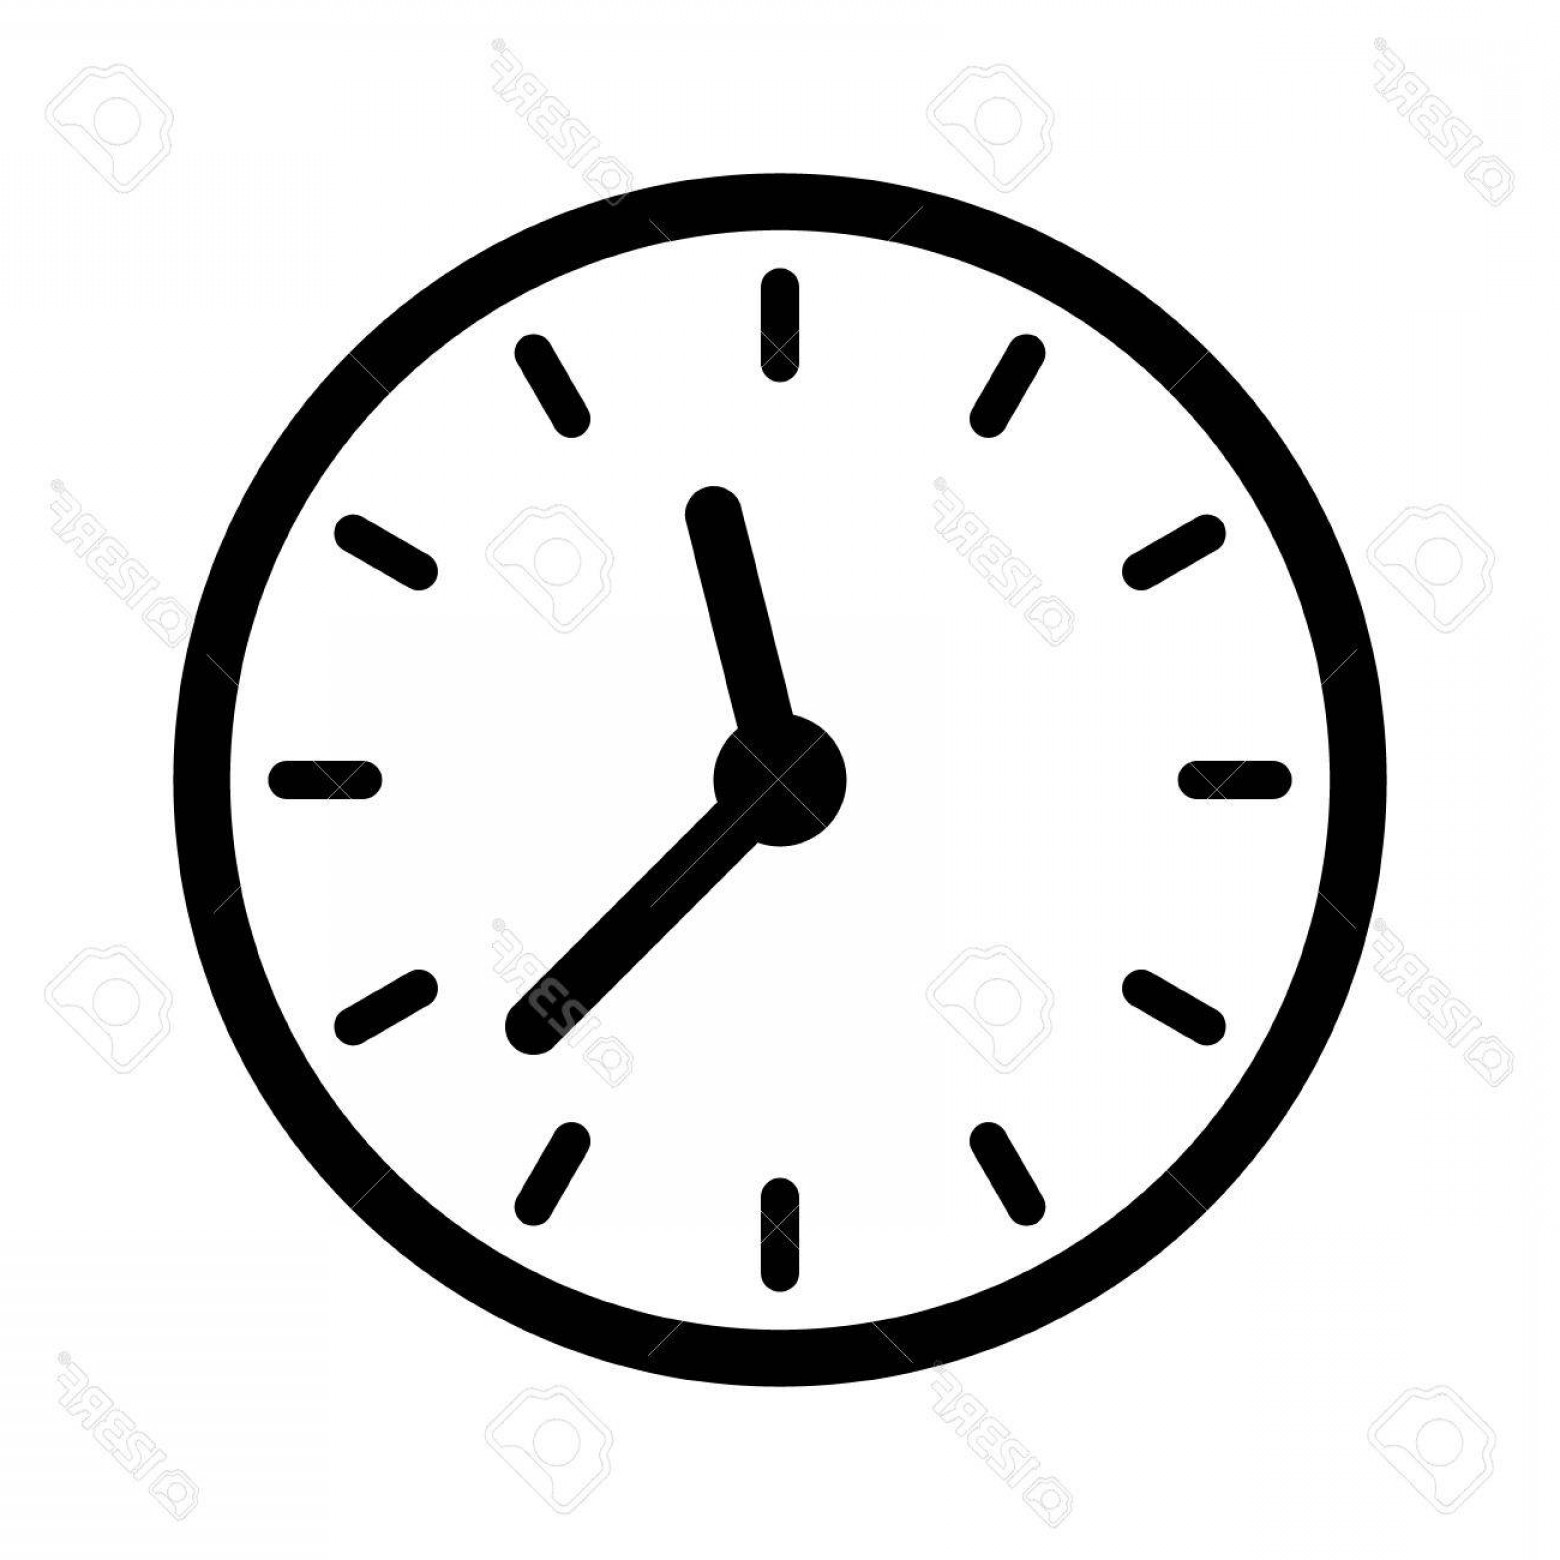 Watch Face Vector: Photostock Vector Clock Face Clockface Or Watch Face With Hands Line Art Icon For Apps And Websites